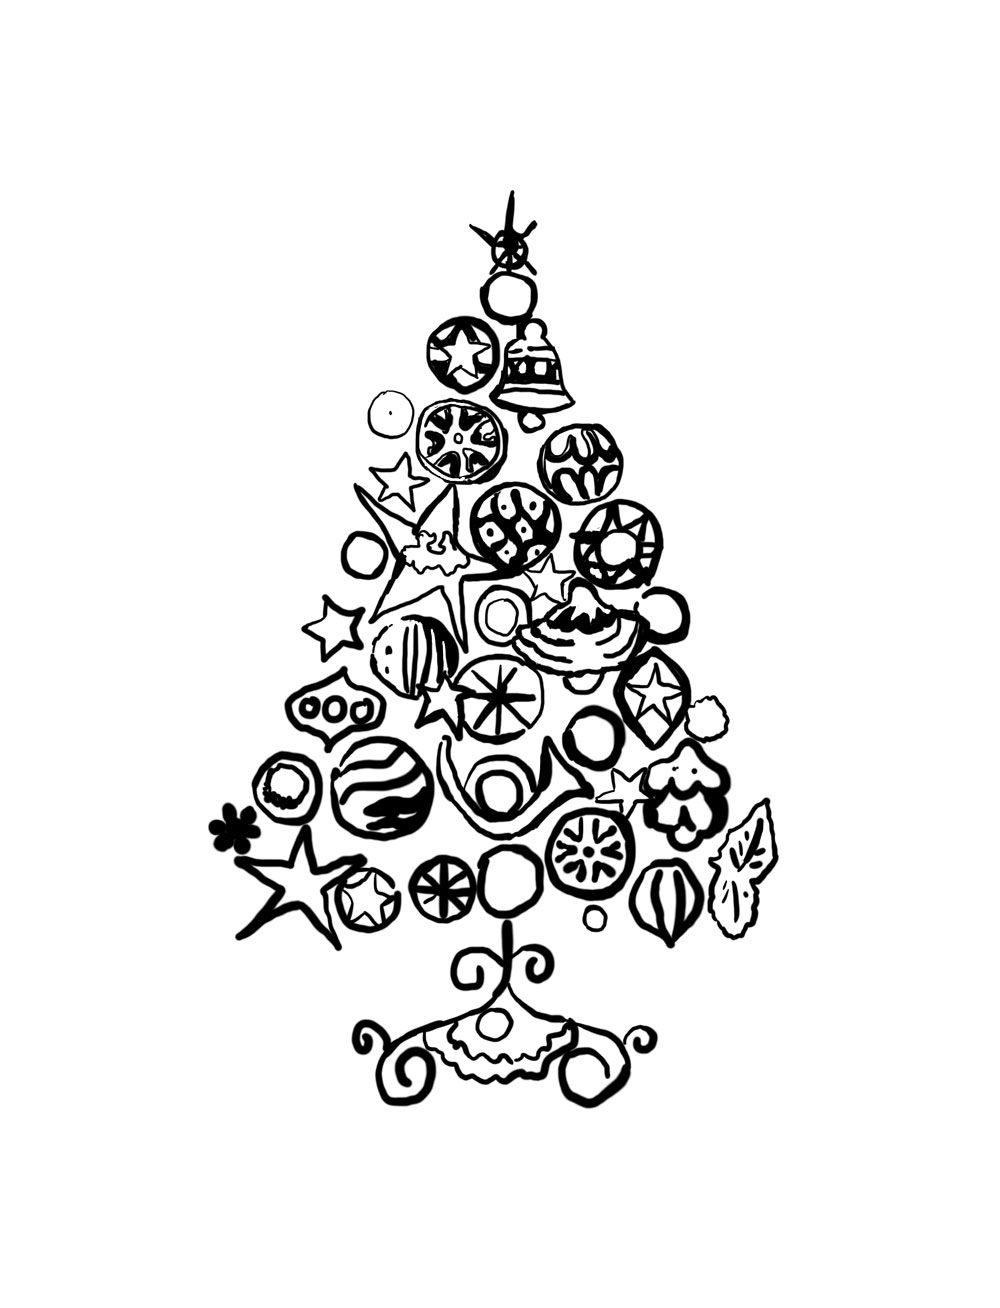 Arty colouring page - christmas tree from Andy Warhol | art ...